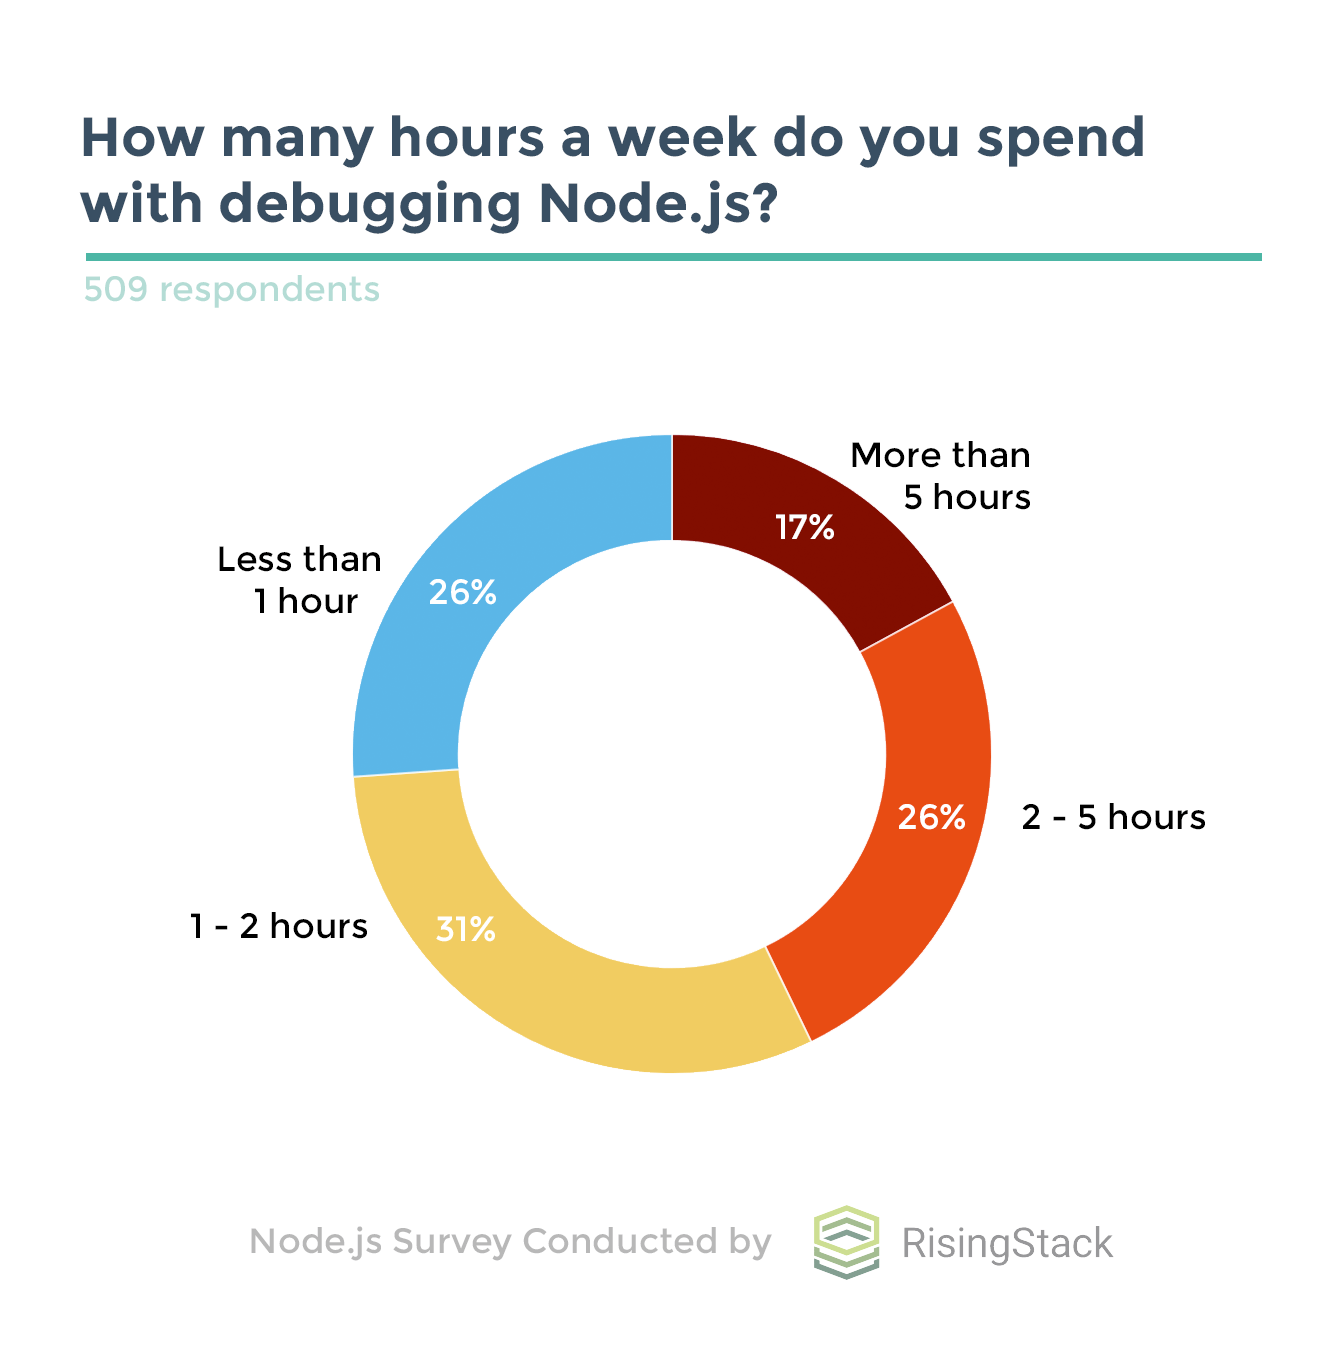 Node.js Survey by RisingStack - Time spent with Debugging